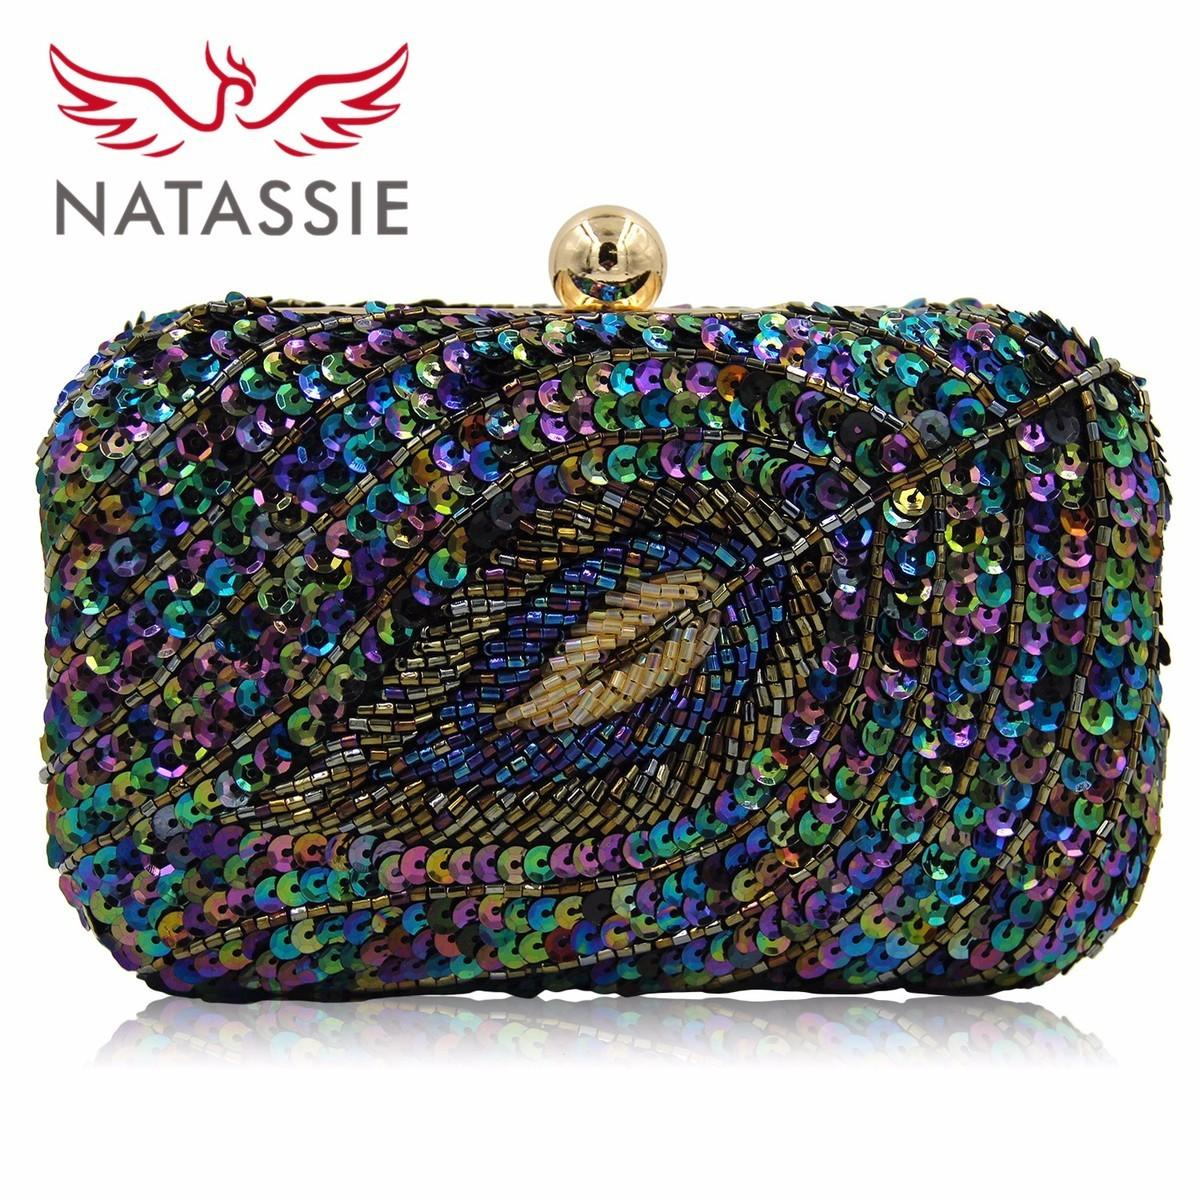 6d3f7a7f703 NATASSIE New Design Ladies Evening Bag Women Sequined Beaded Wedding Party  Floral High Quality Clutch With Chain Online Bags Handbag Online From  Fenxin, ...